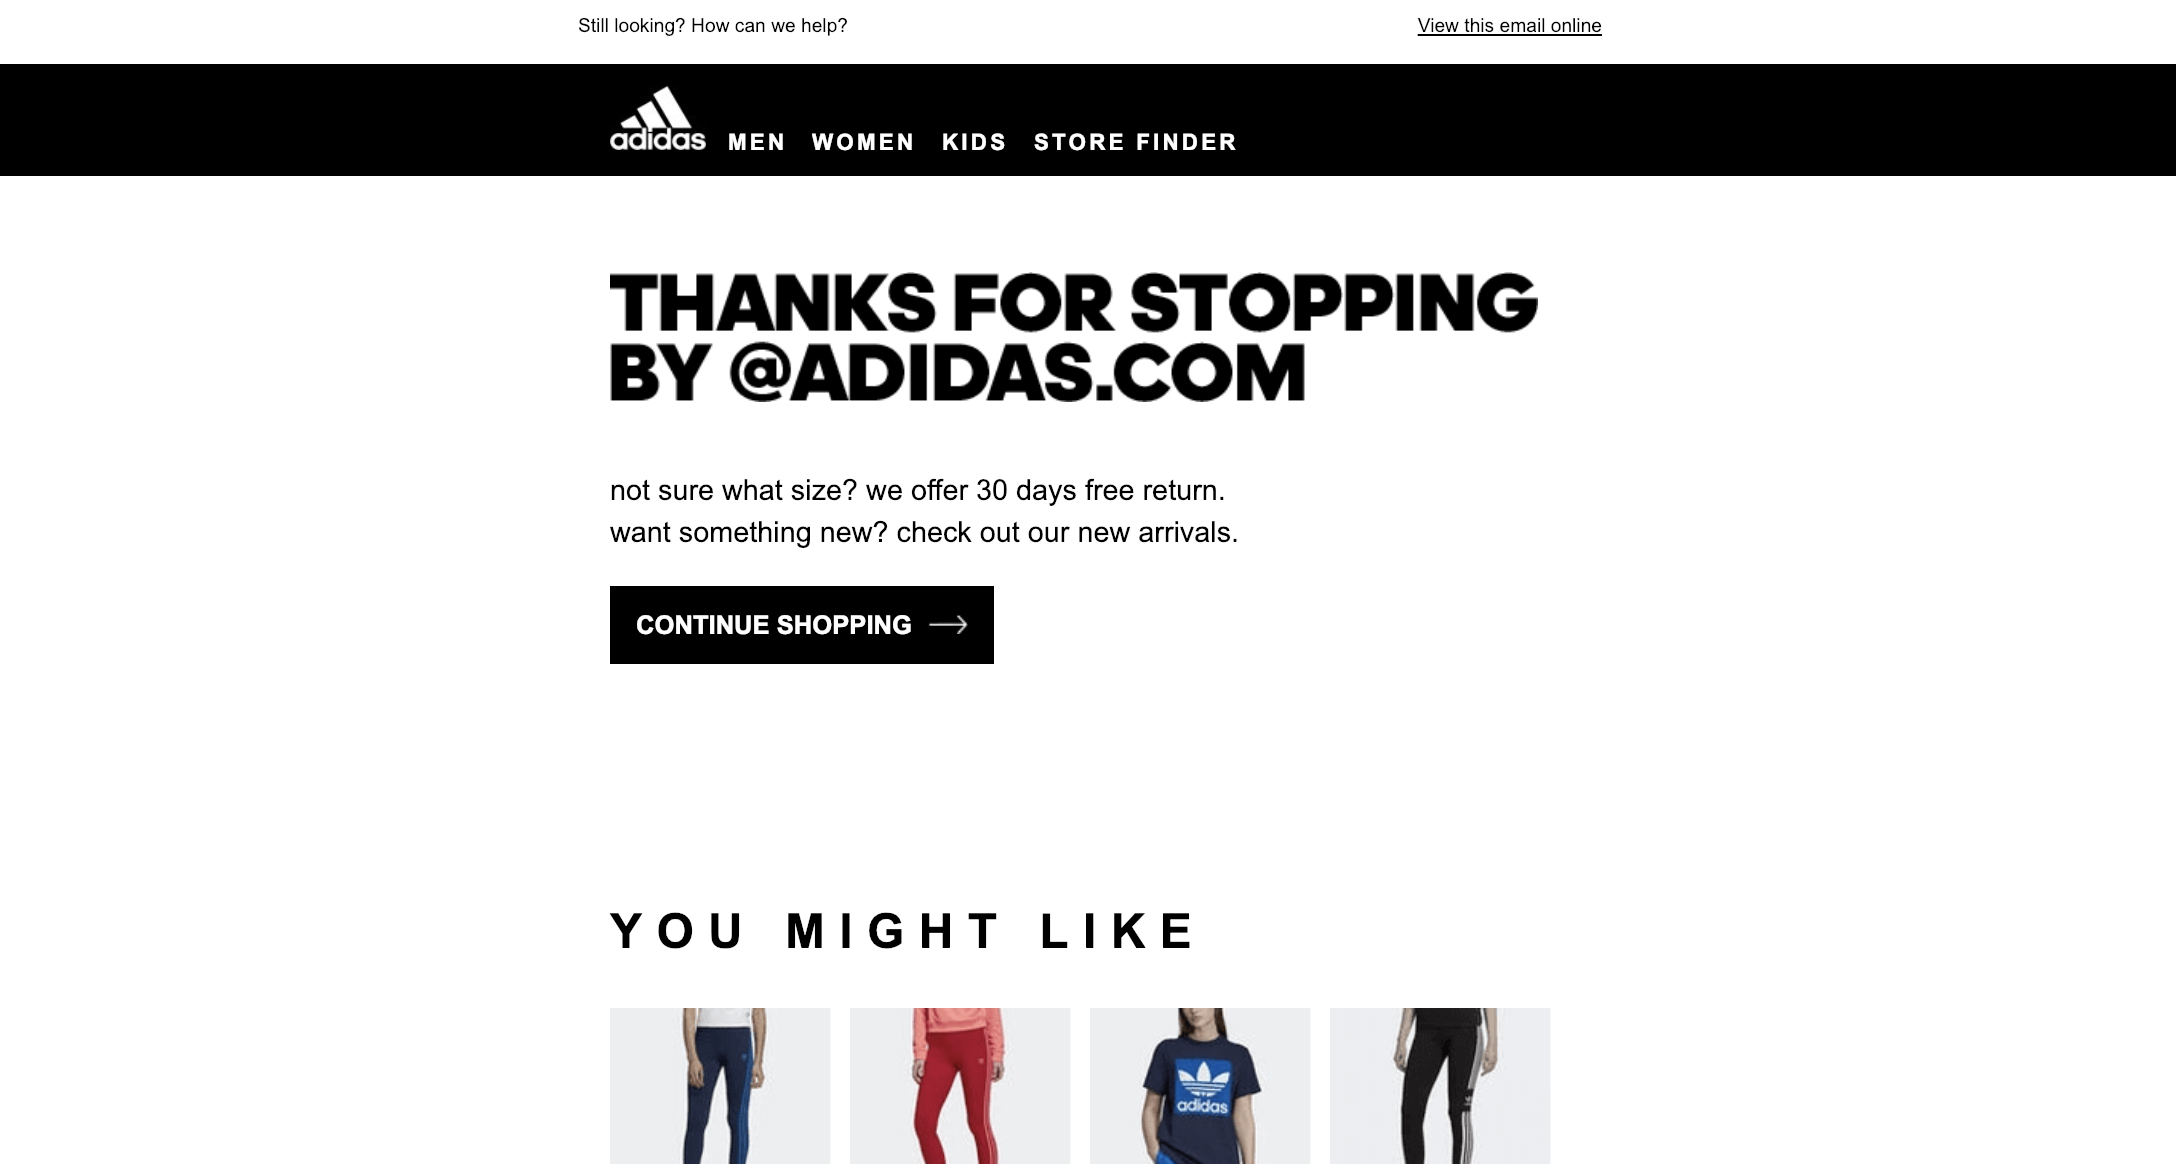 adidas-abandoned-cart-email-1-thanks-for-stopping-by